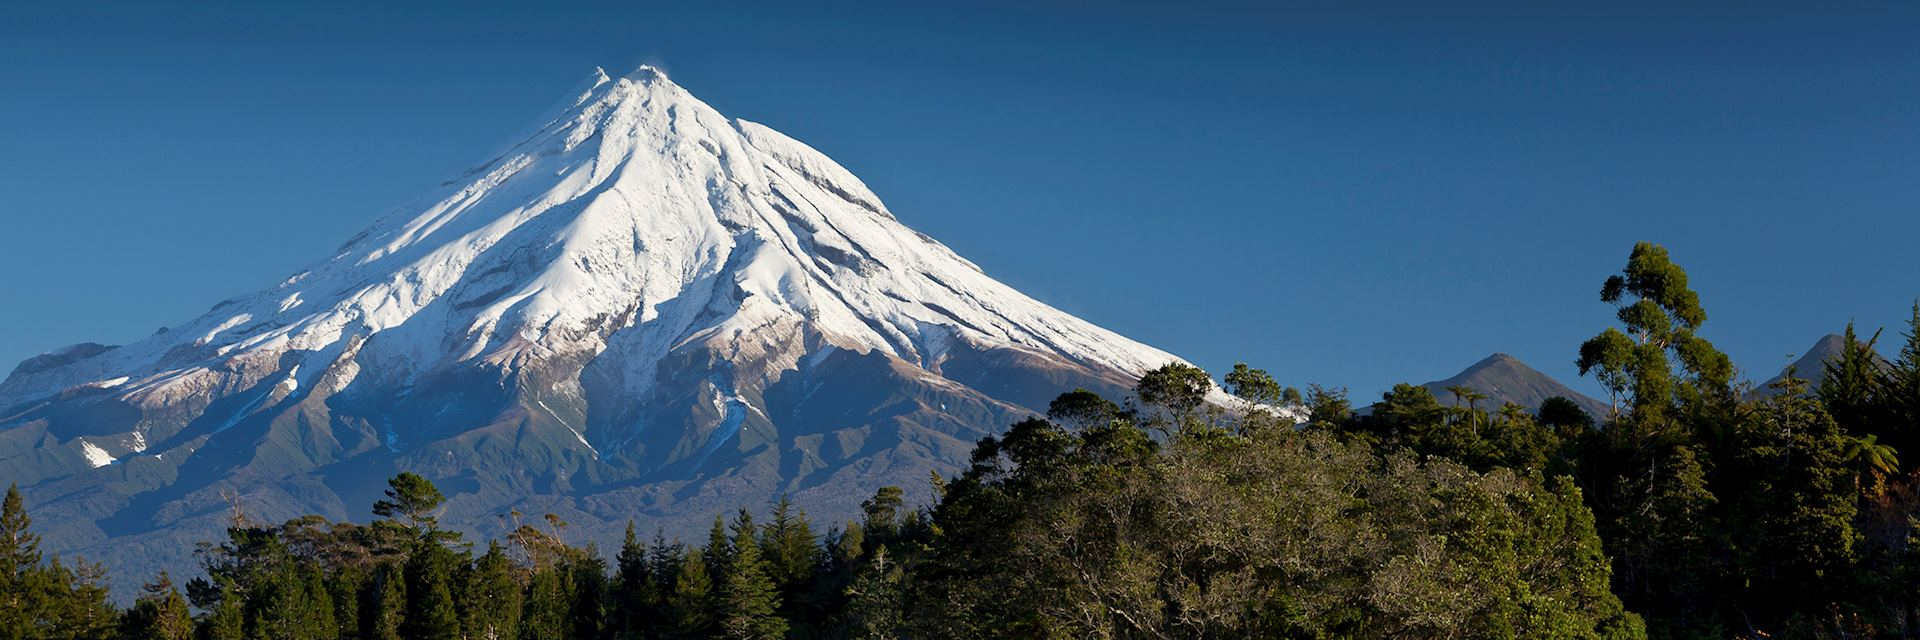 Mount Taranaki in New Plymouth, New Zealand